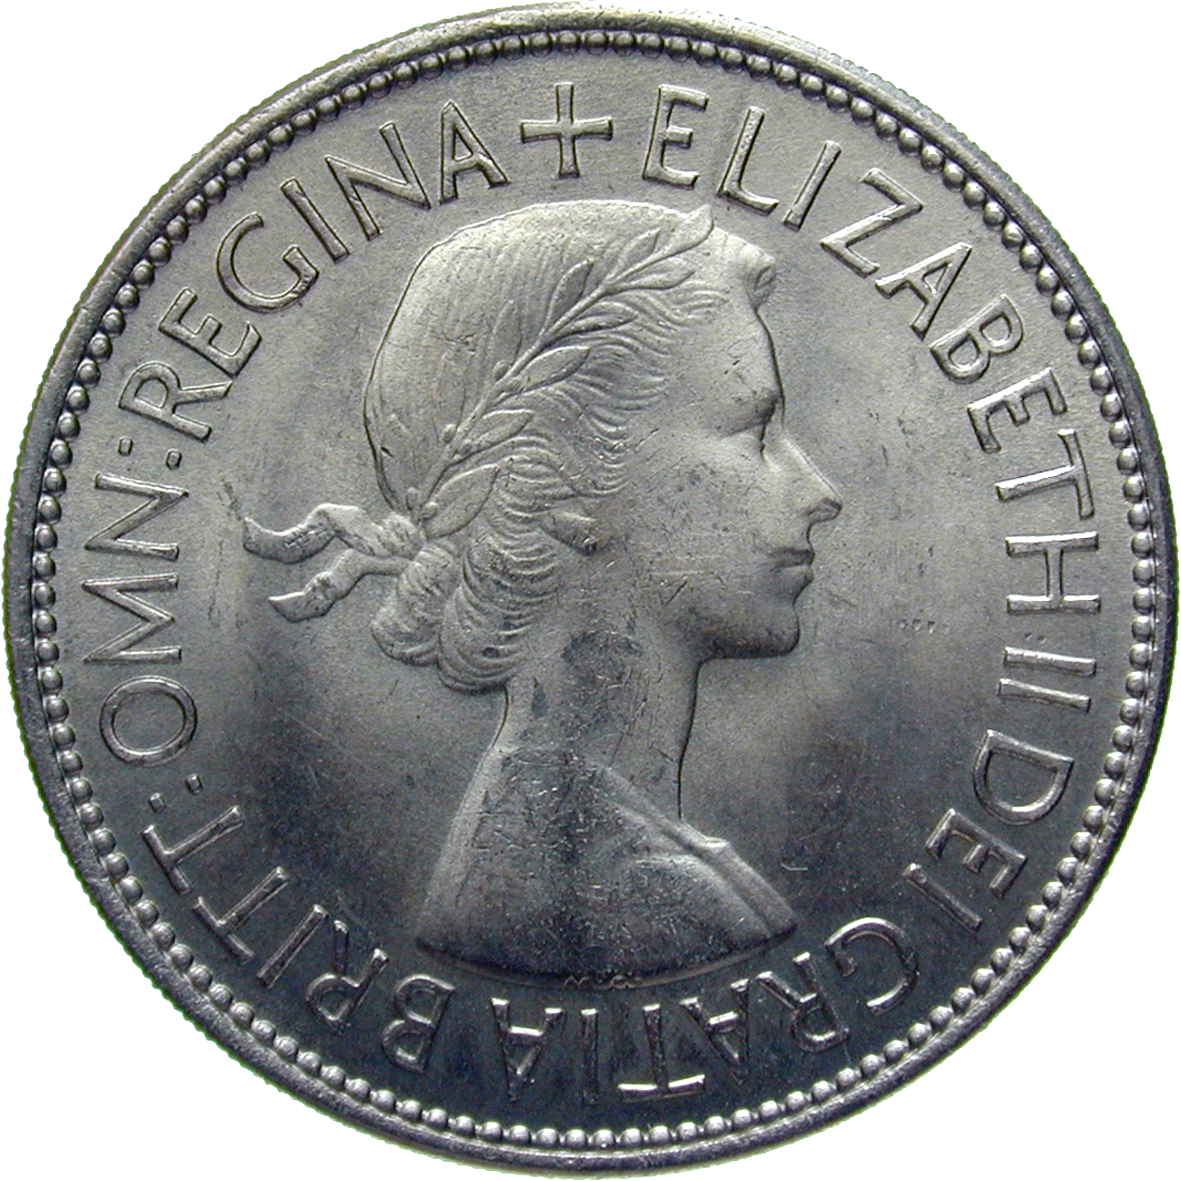 United Kingdom of Great Britain, Elizabeth II, 1/2 Crown 1953 (obverse)